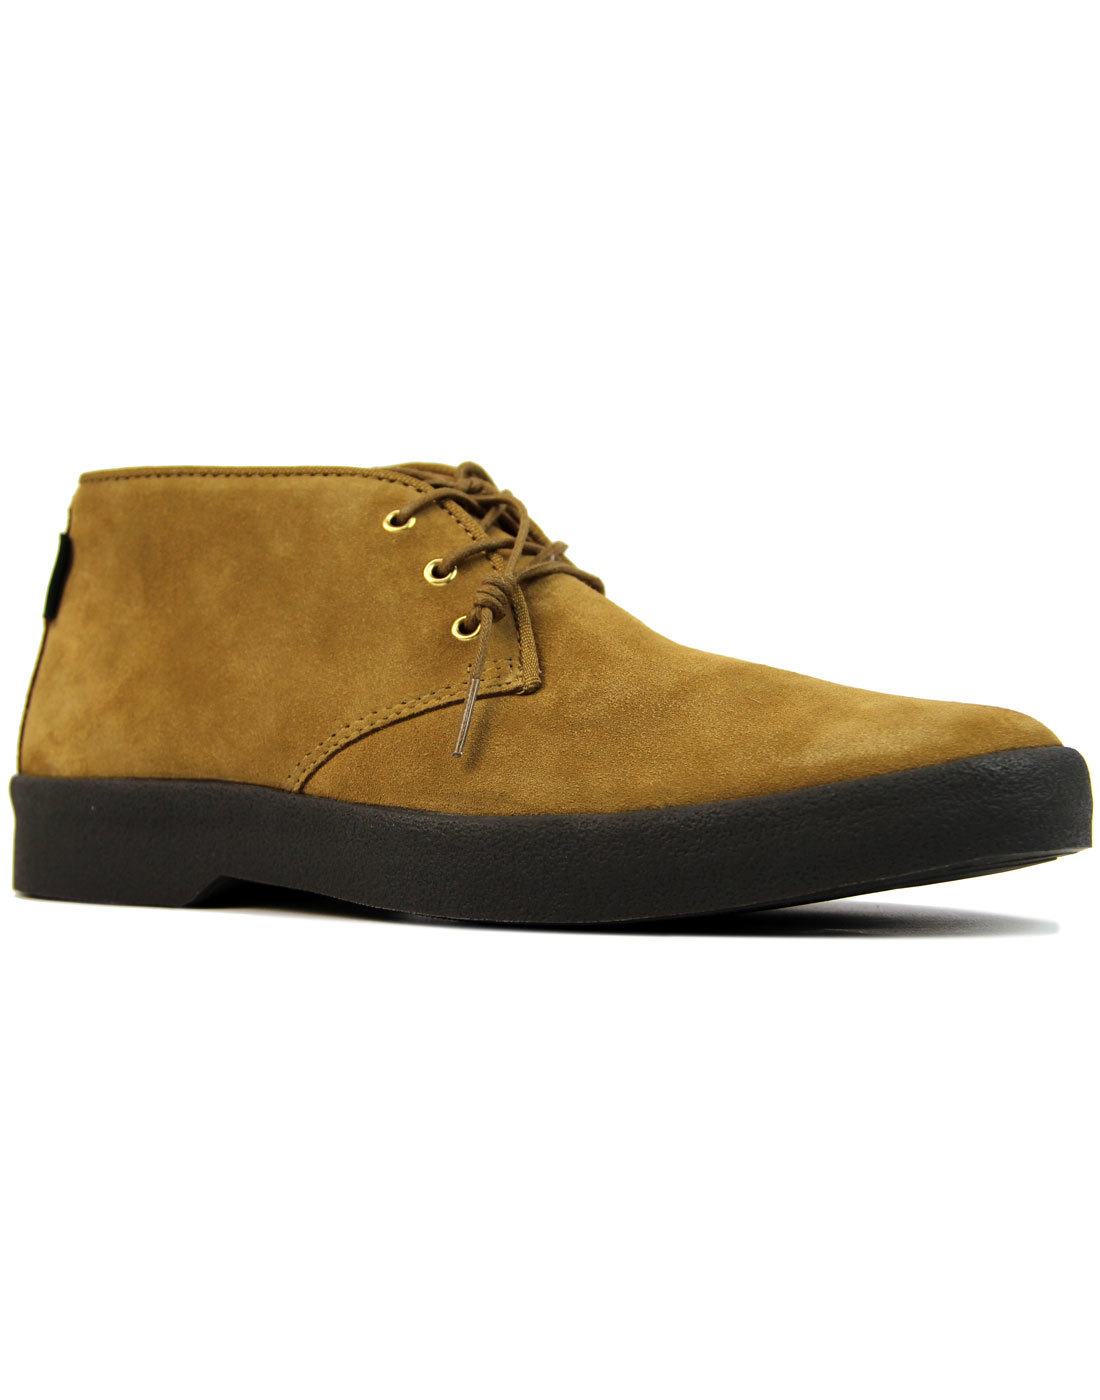 Scholar Stanford BASS WEEJUNS Mod Playboy Boots MB